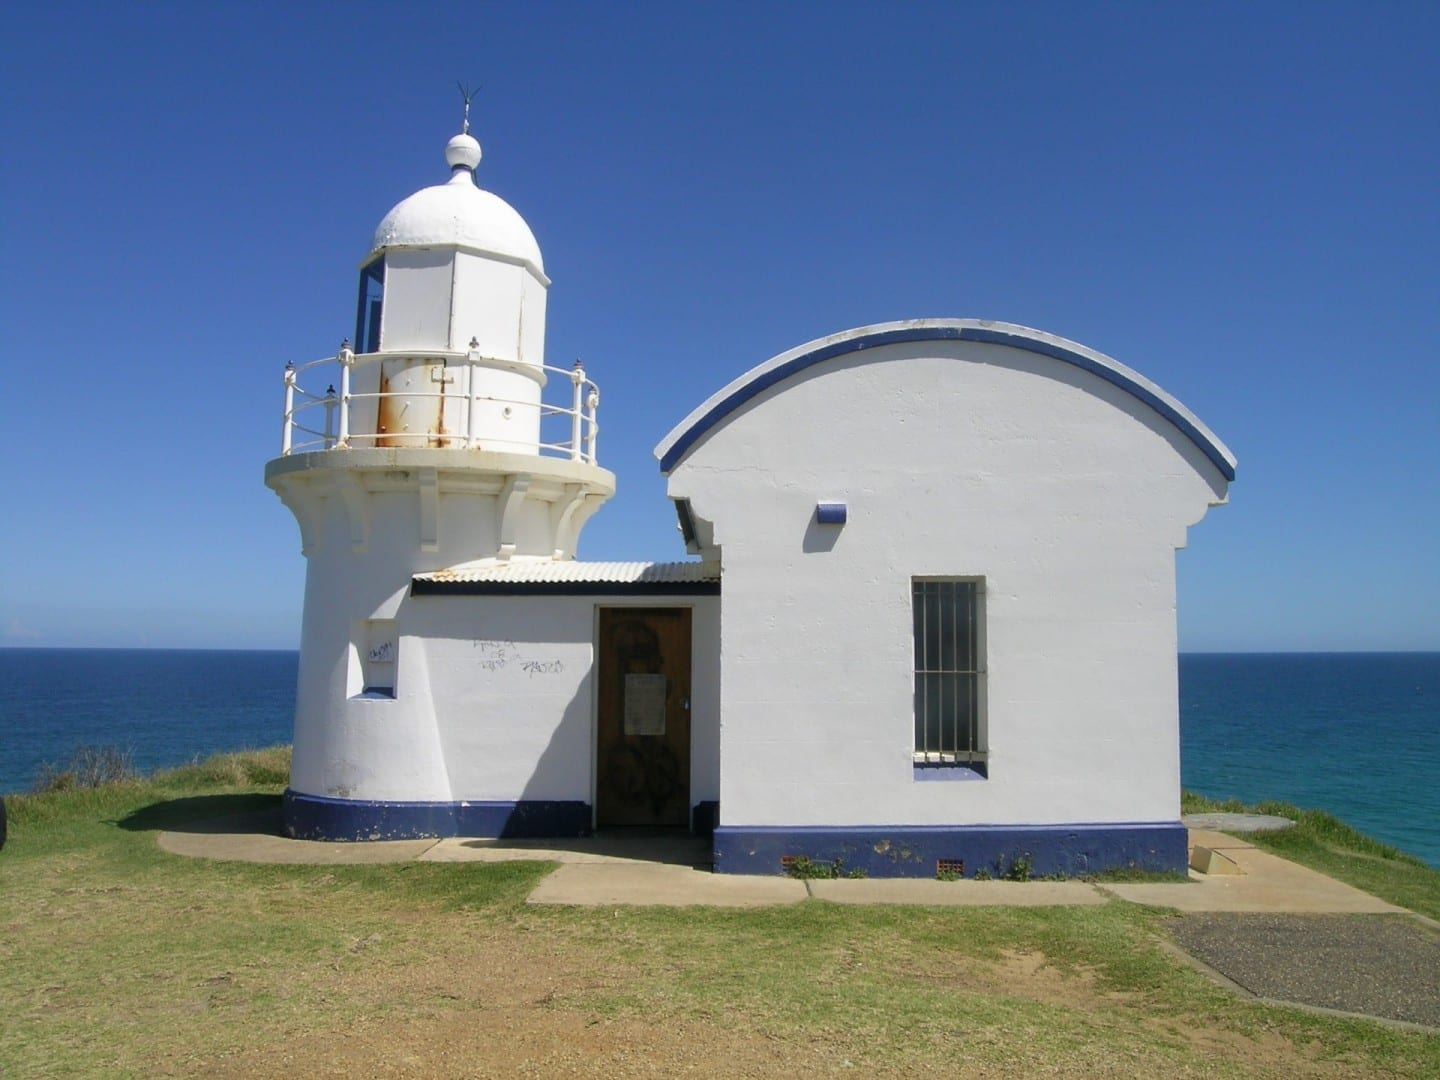 Faro de Tacking Point, Port Macquarie Port Macquarie Australia